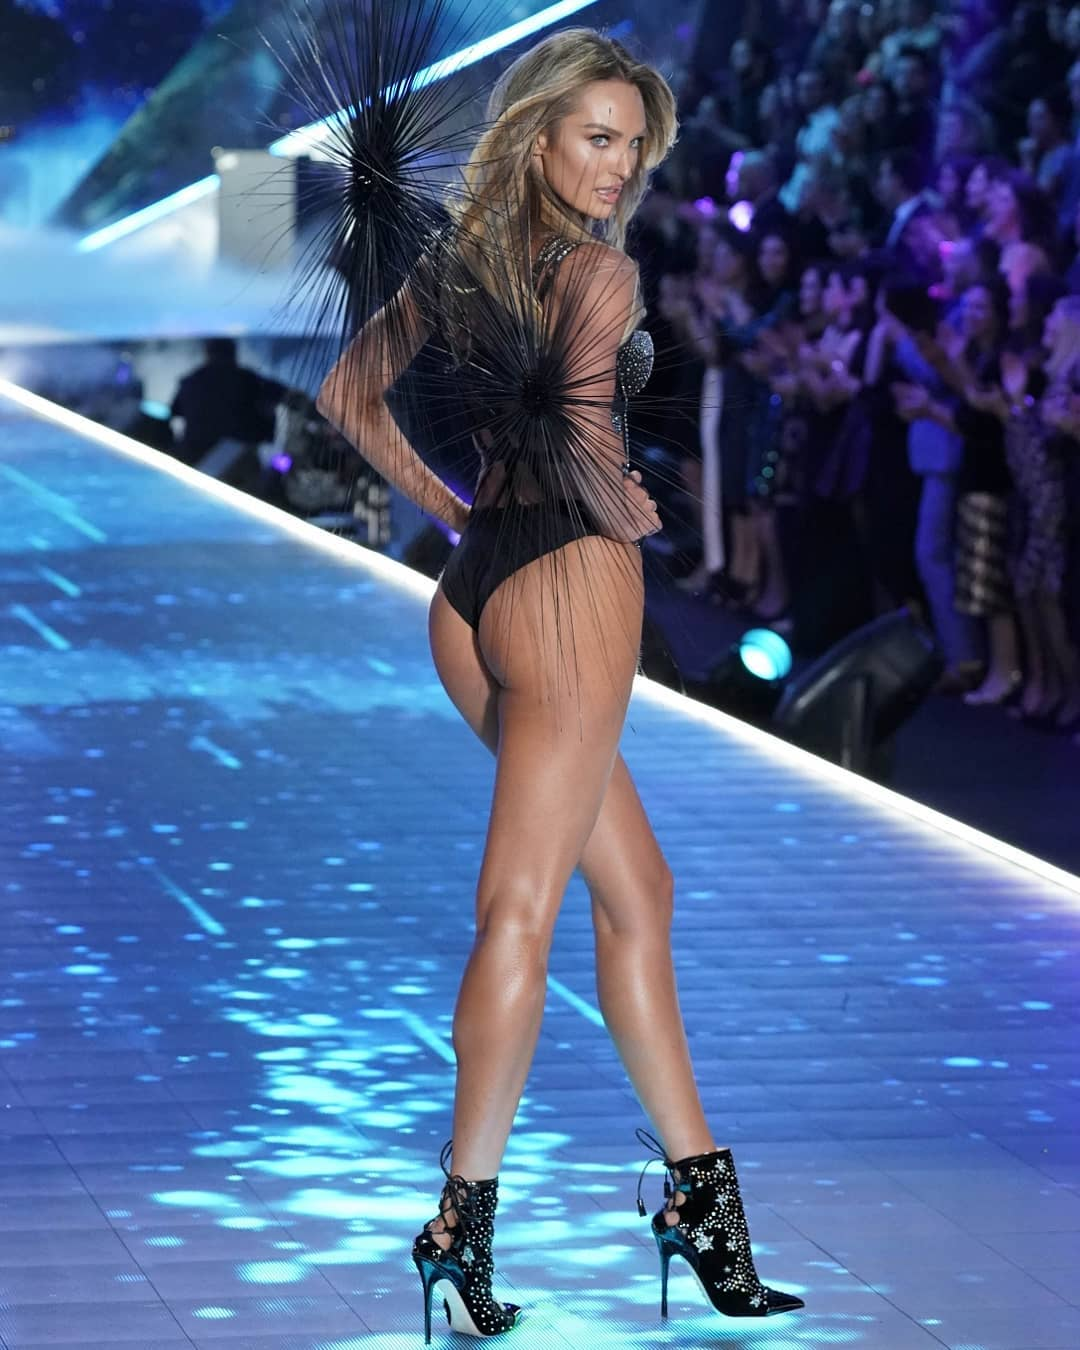 Candice Swanepoel Super Hot Ramp Walk